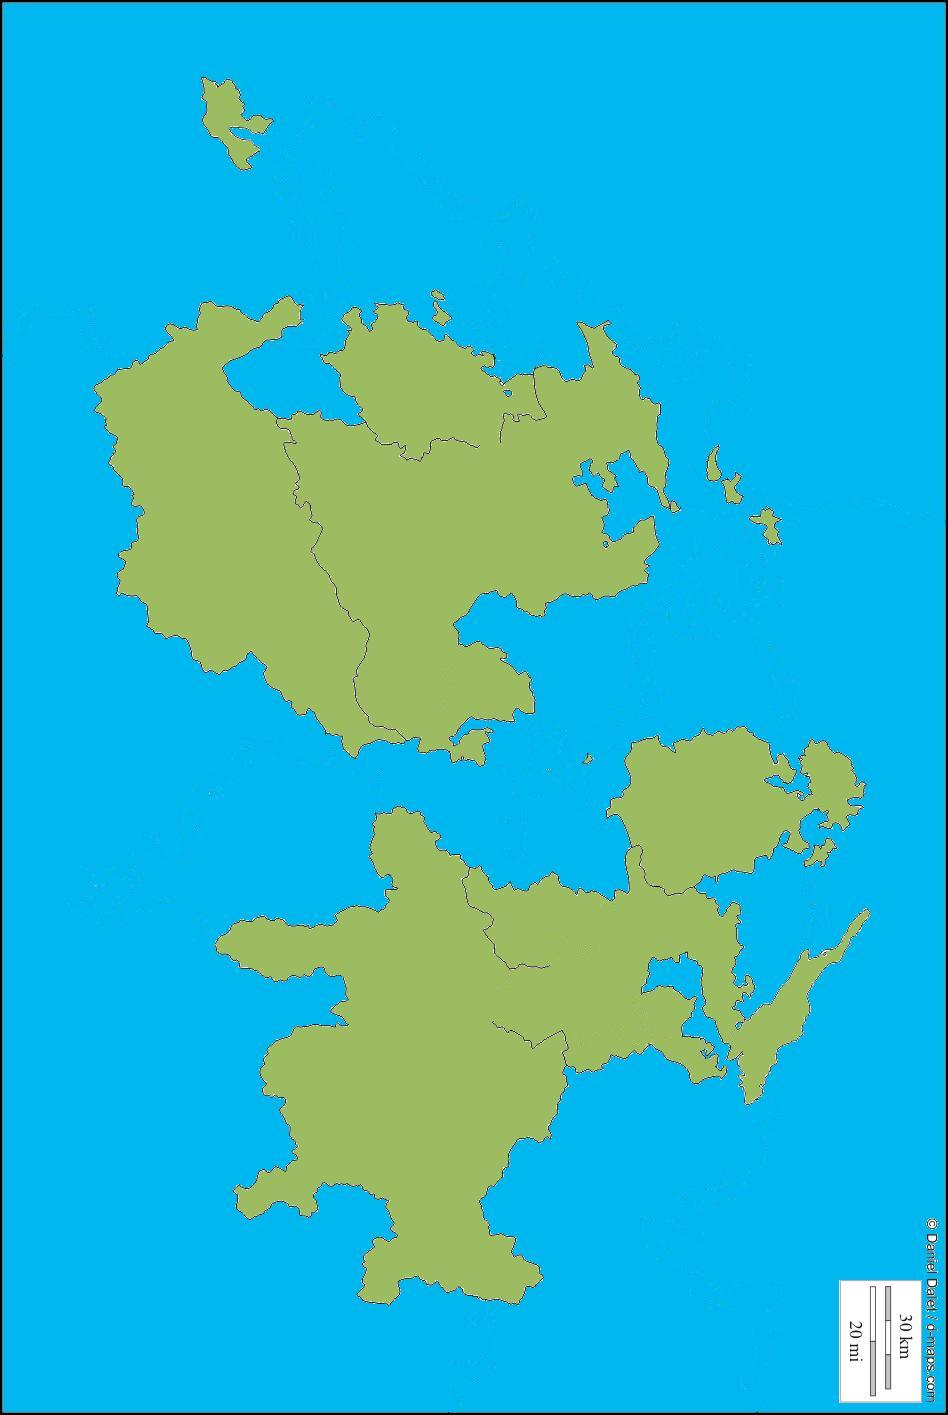 Switz Islands 4: From http://d-maps.com/ this is modified areas of Switzerland. I think it could be 2 large continents, or smaller islands. FREE for anyone who wants to use it. I'd love to see what you do with it.